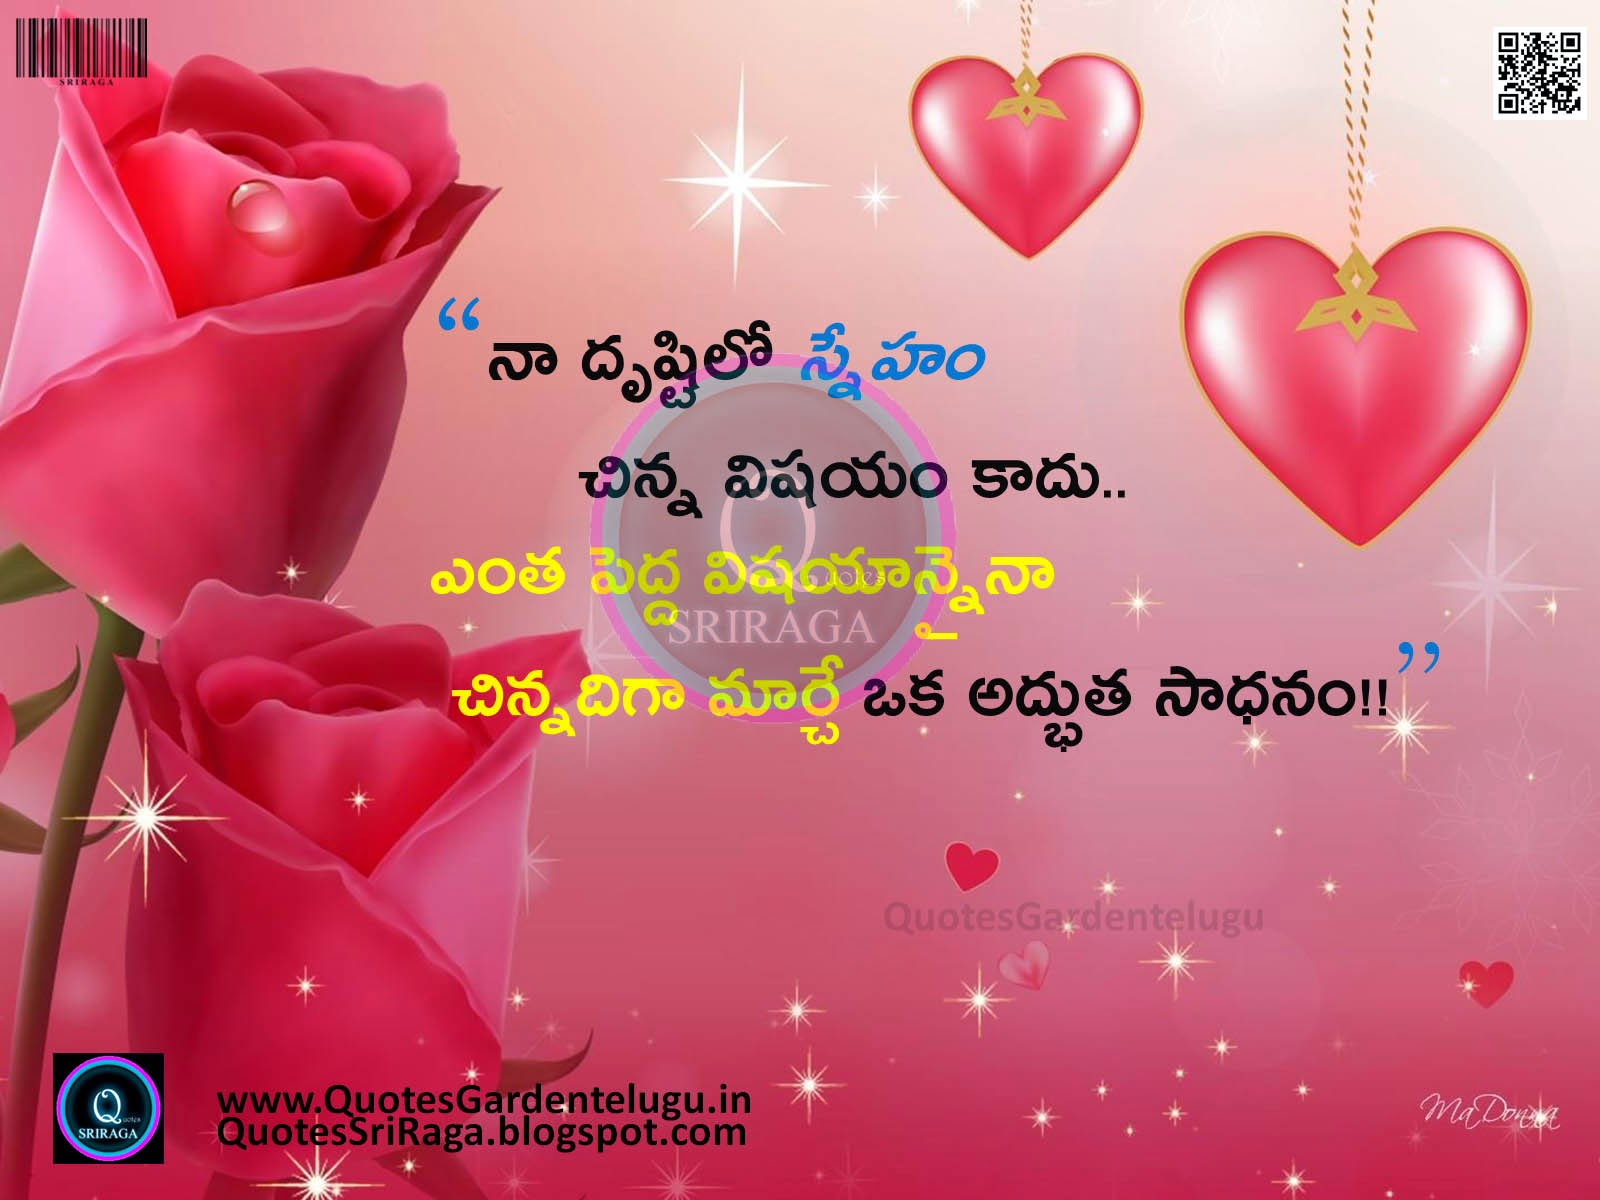 Quotes About Friendship Pictures Best Telugu Friendship Quotes With Images  Quotes Garden Telugu